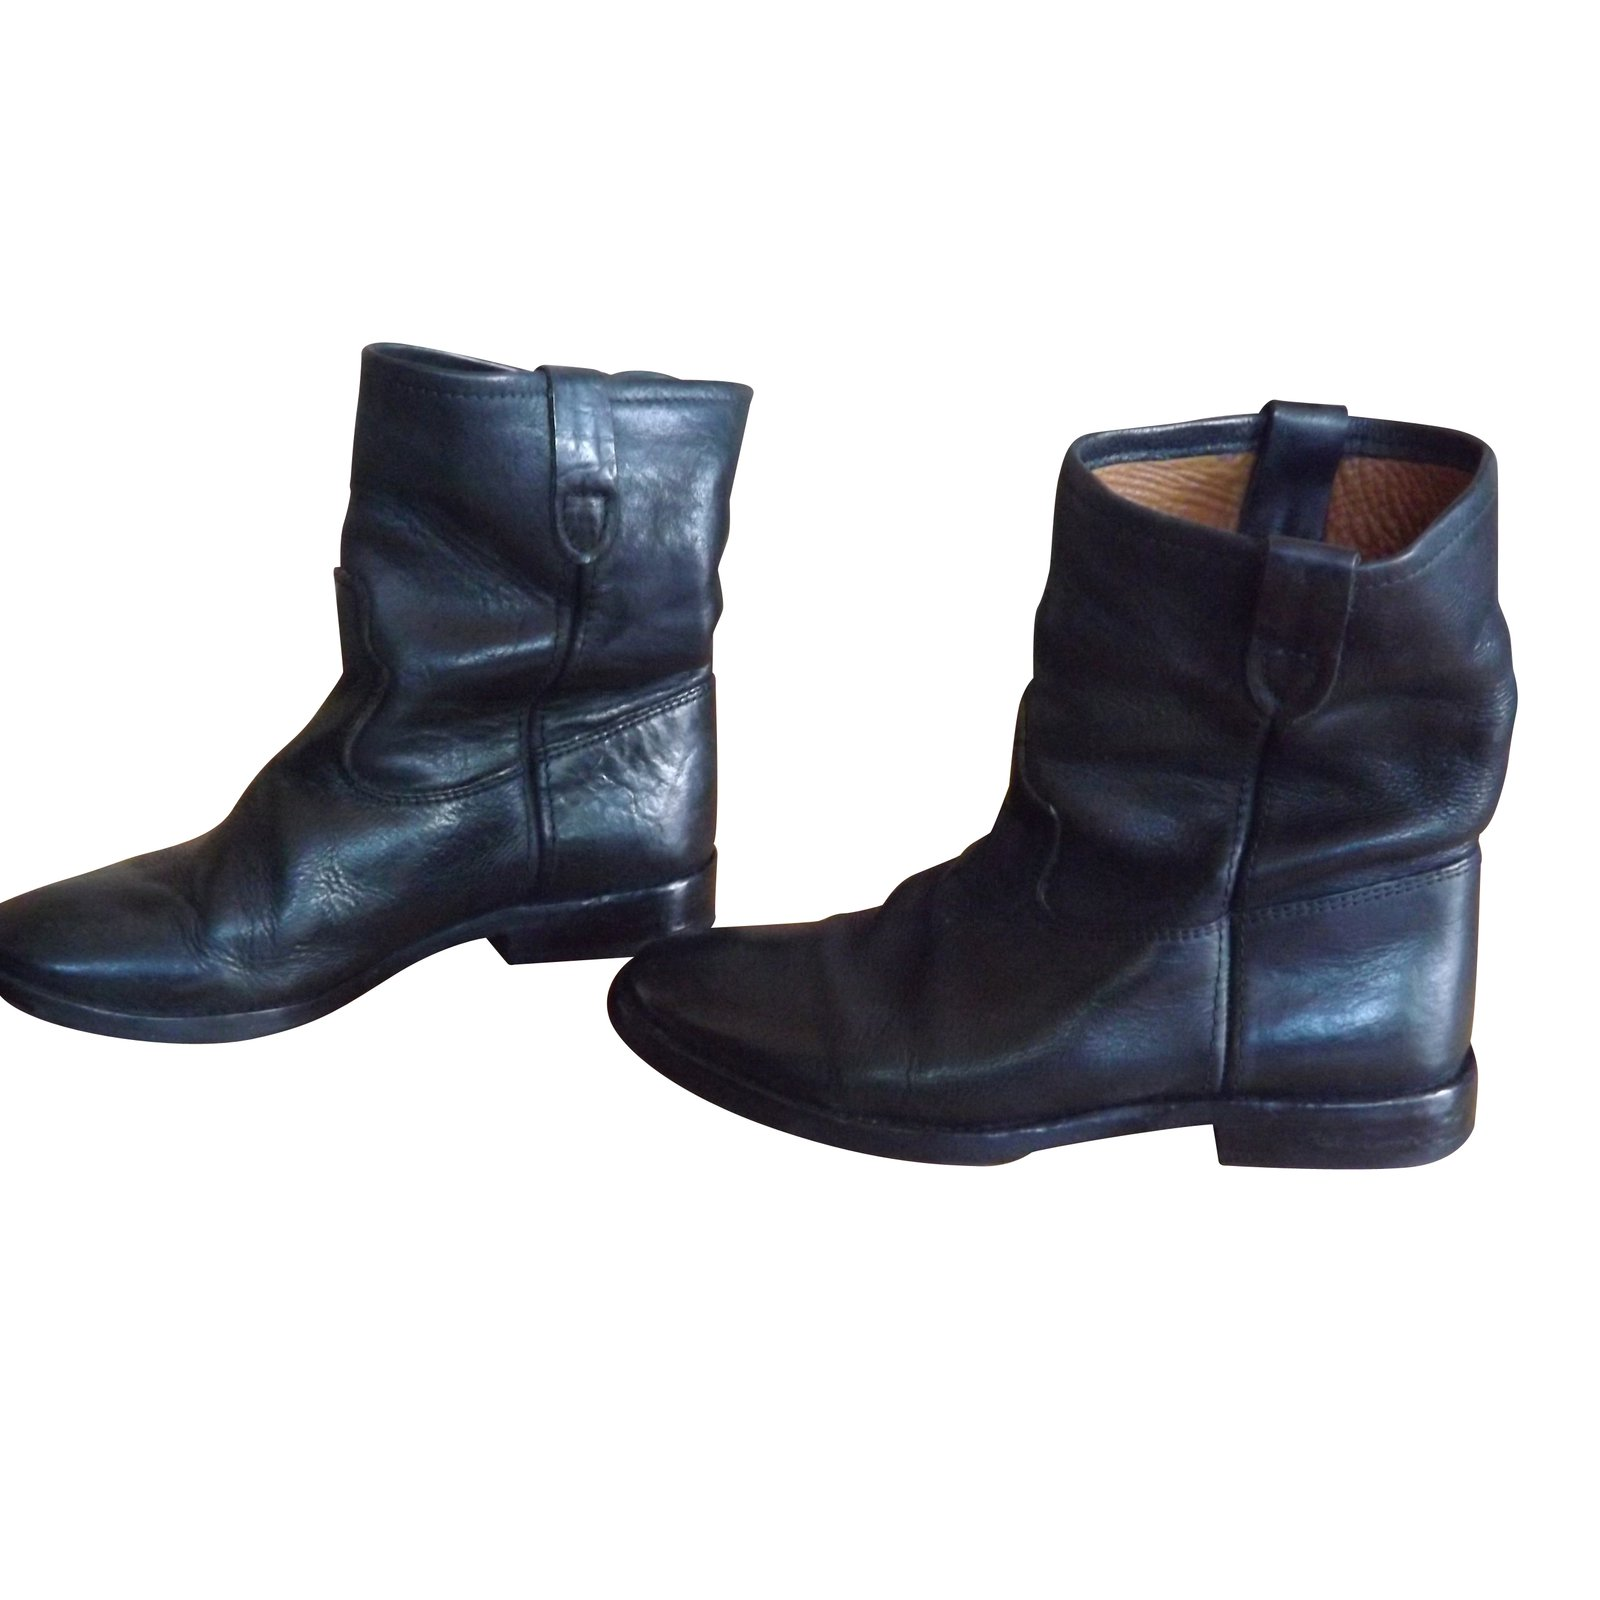 Isabel Marant Ankle Boots Ankle Boots Leather Black ref.5476 - Joli ... 8ec0752fd928